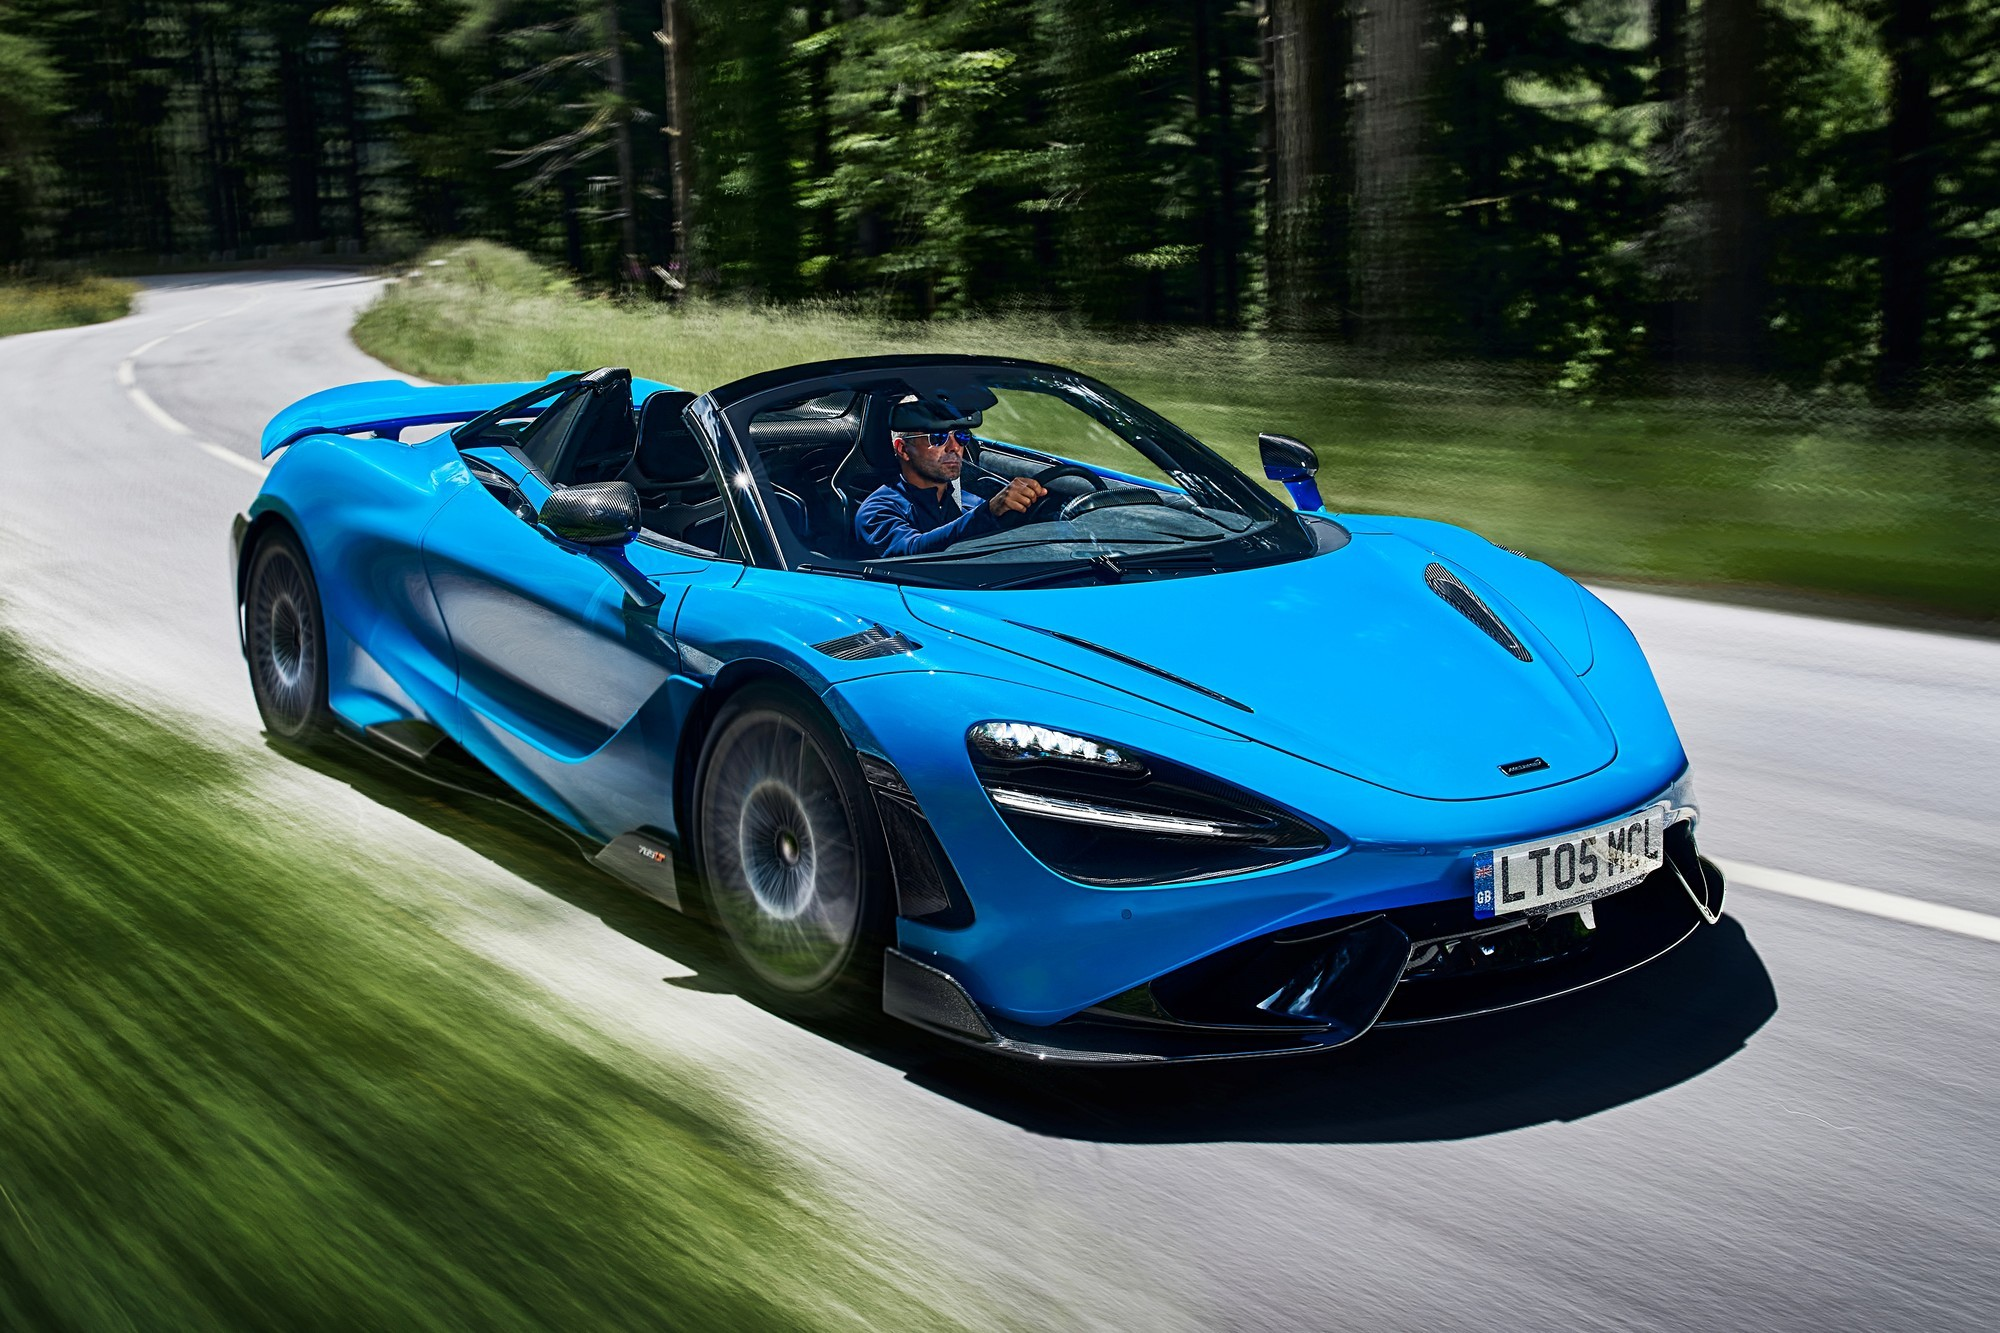 McLaren has received trademark rights for the names 'Aeron', 'Aonic' and 'Solus' in Great Britain, likely to be used for future sports cars. Some of the marque's more recent releases also began with 'A' or 'S': remember the Artura, Sabre, Senna or Speedtail (watch the video for the latter).